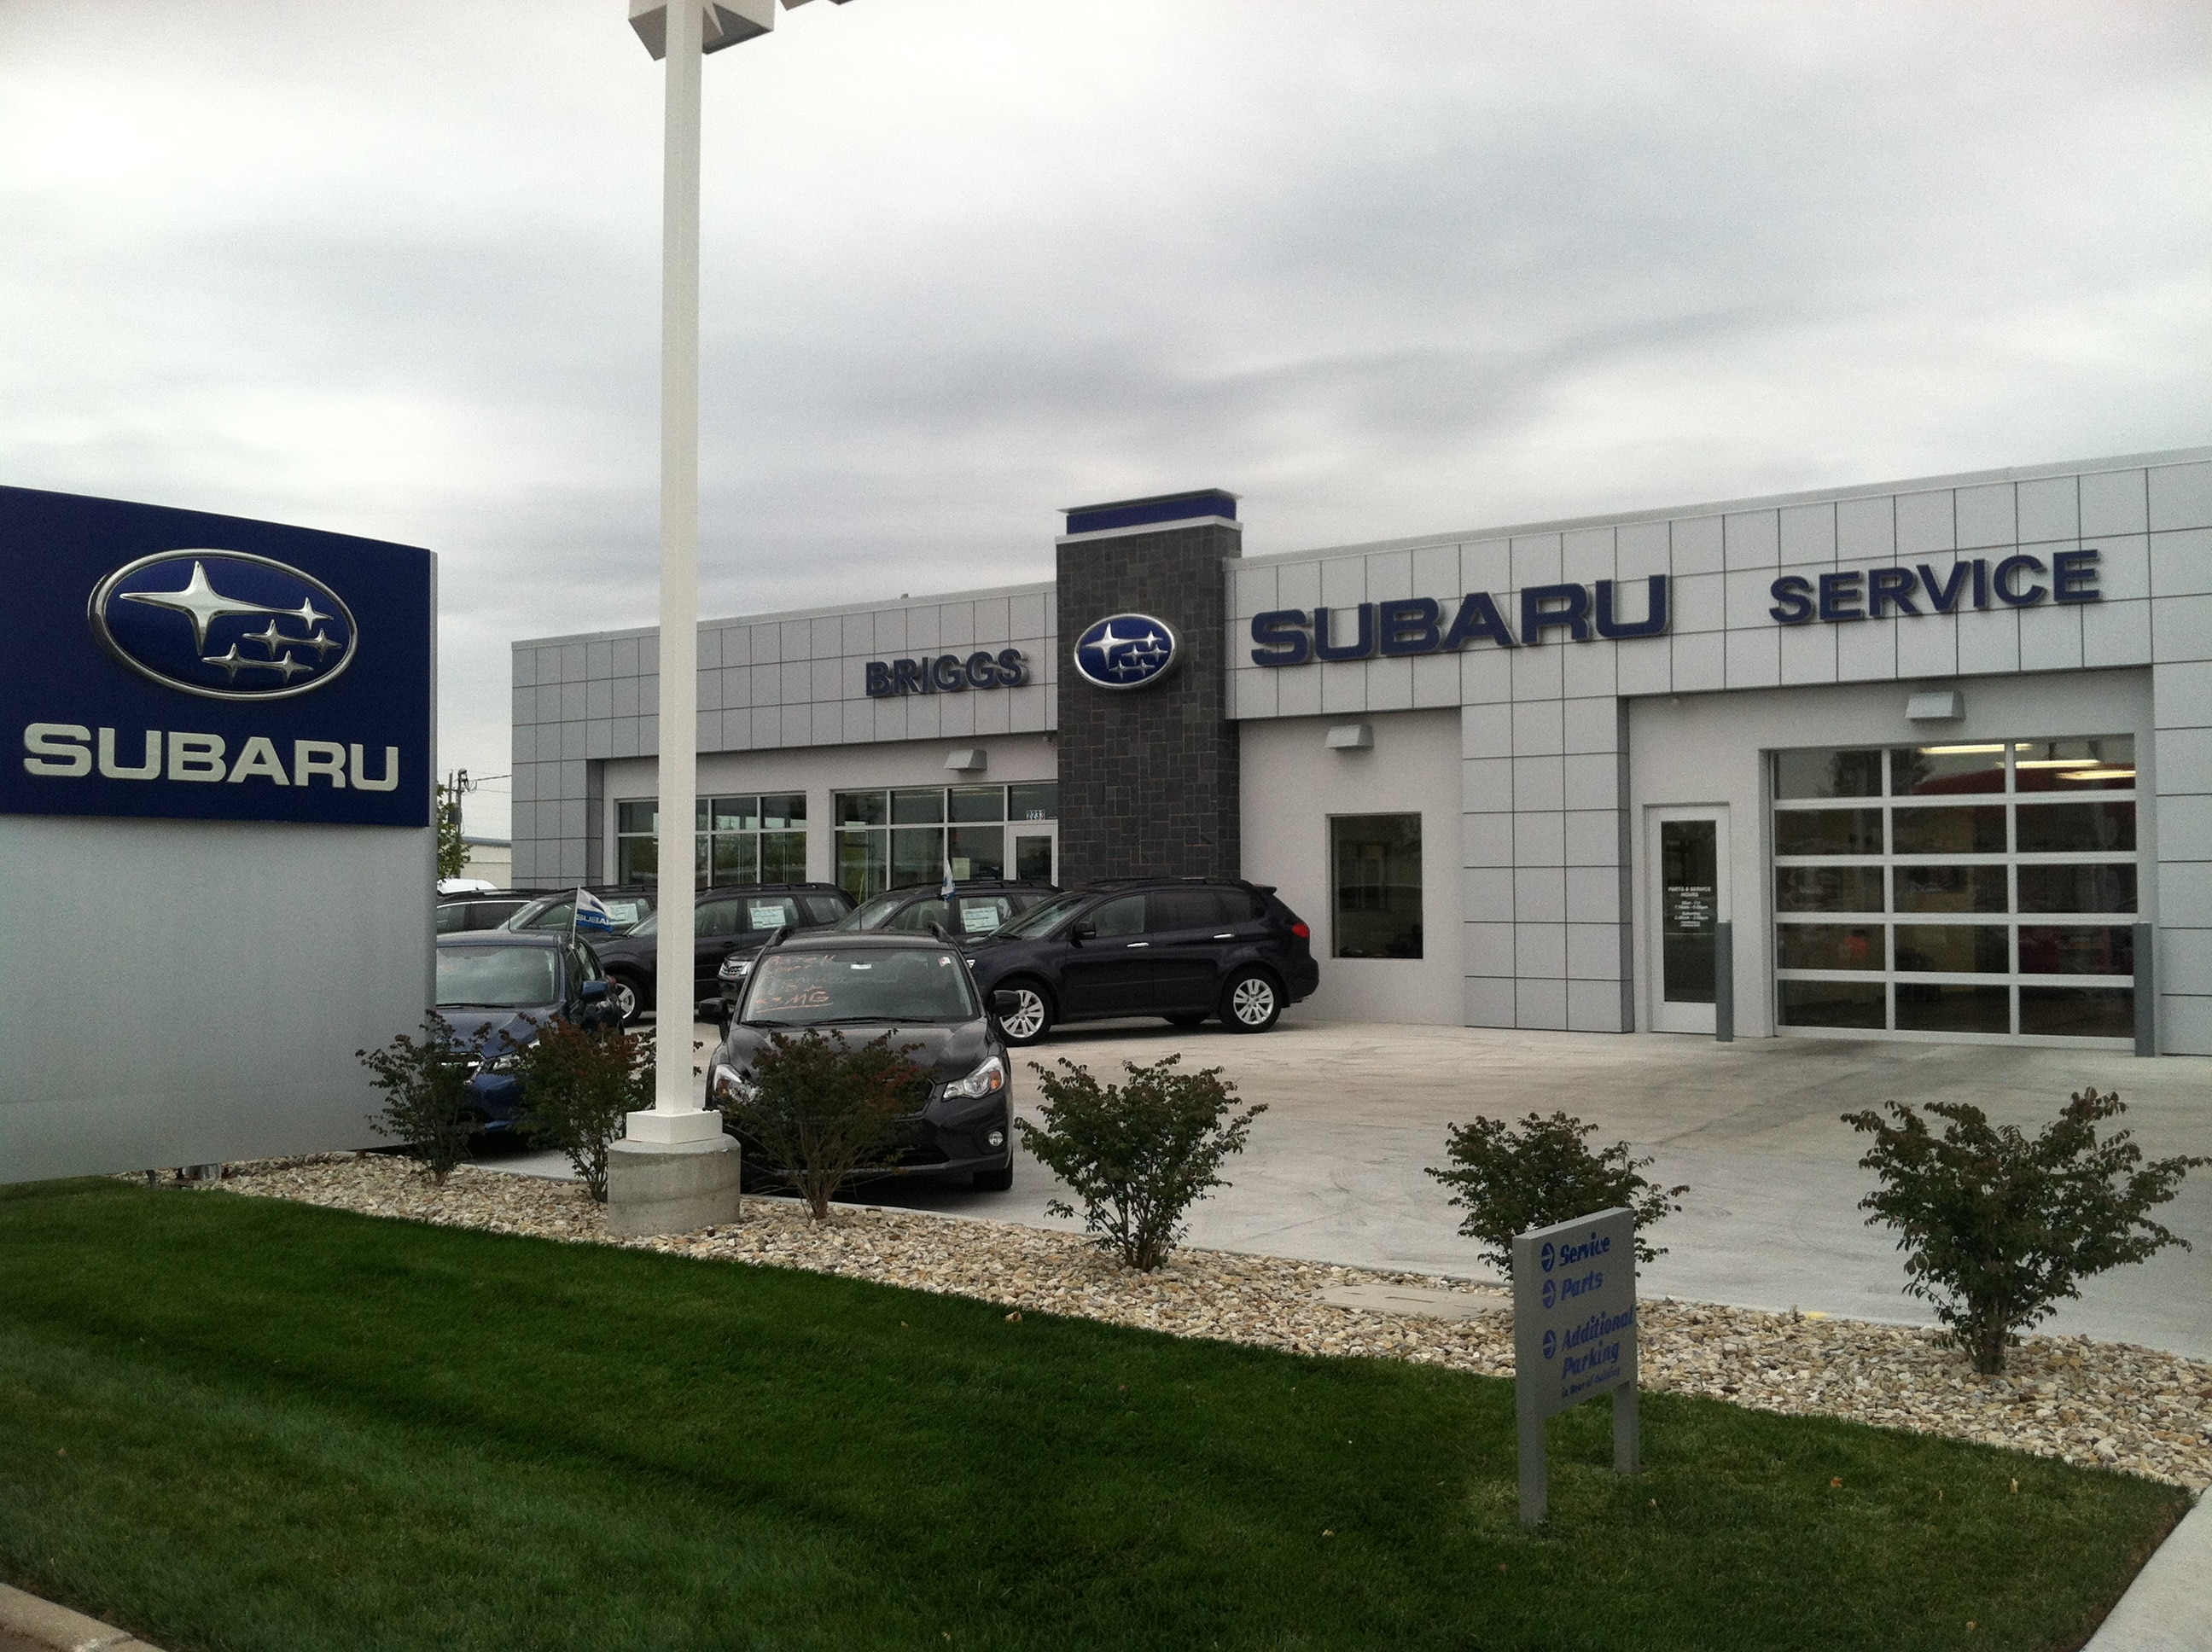 Subaru Service Auto Repairs Genuine Subaru Parts In Lawrence Ks